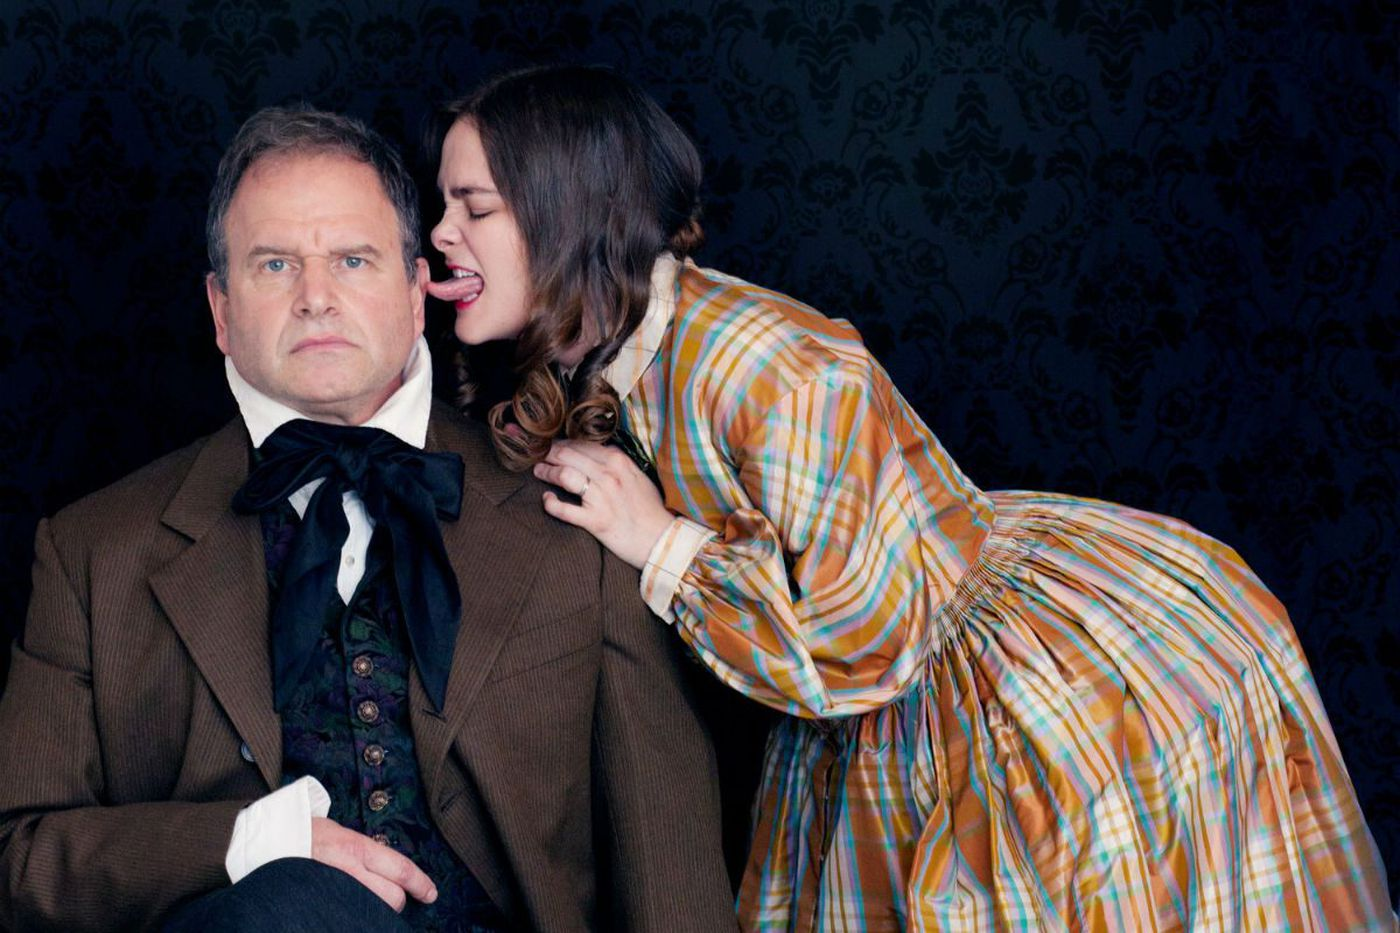 Orbiter 3's 'The Brownings' at FringeArts: Crazy, smart portrait of crazy art, crazy marriage